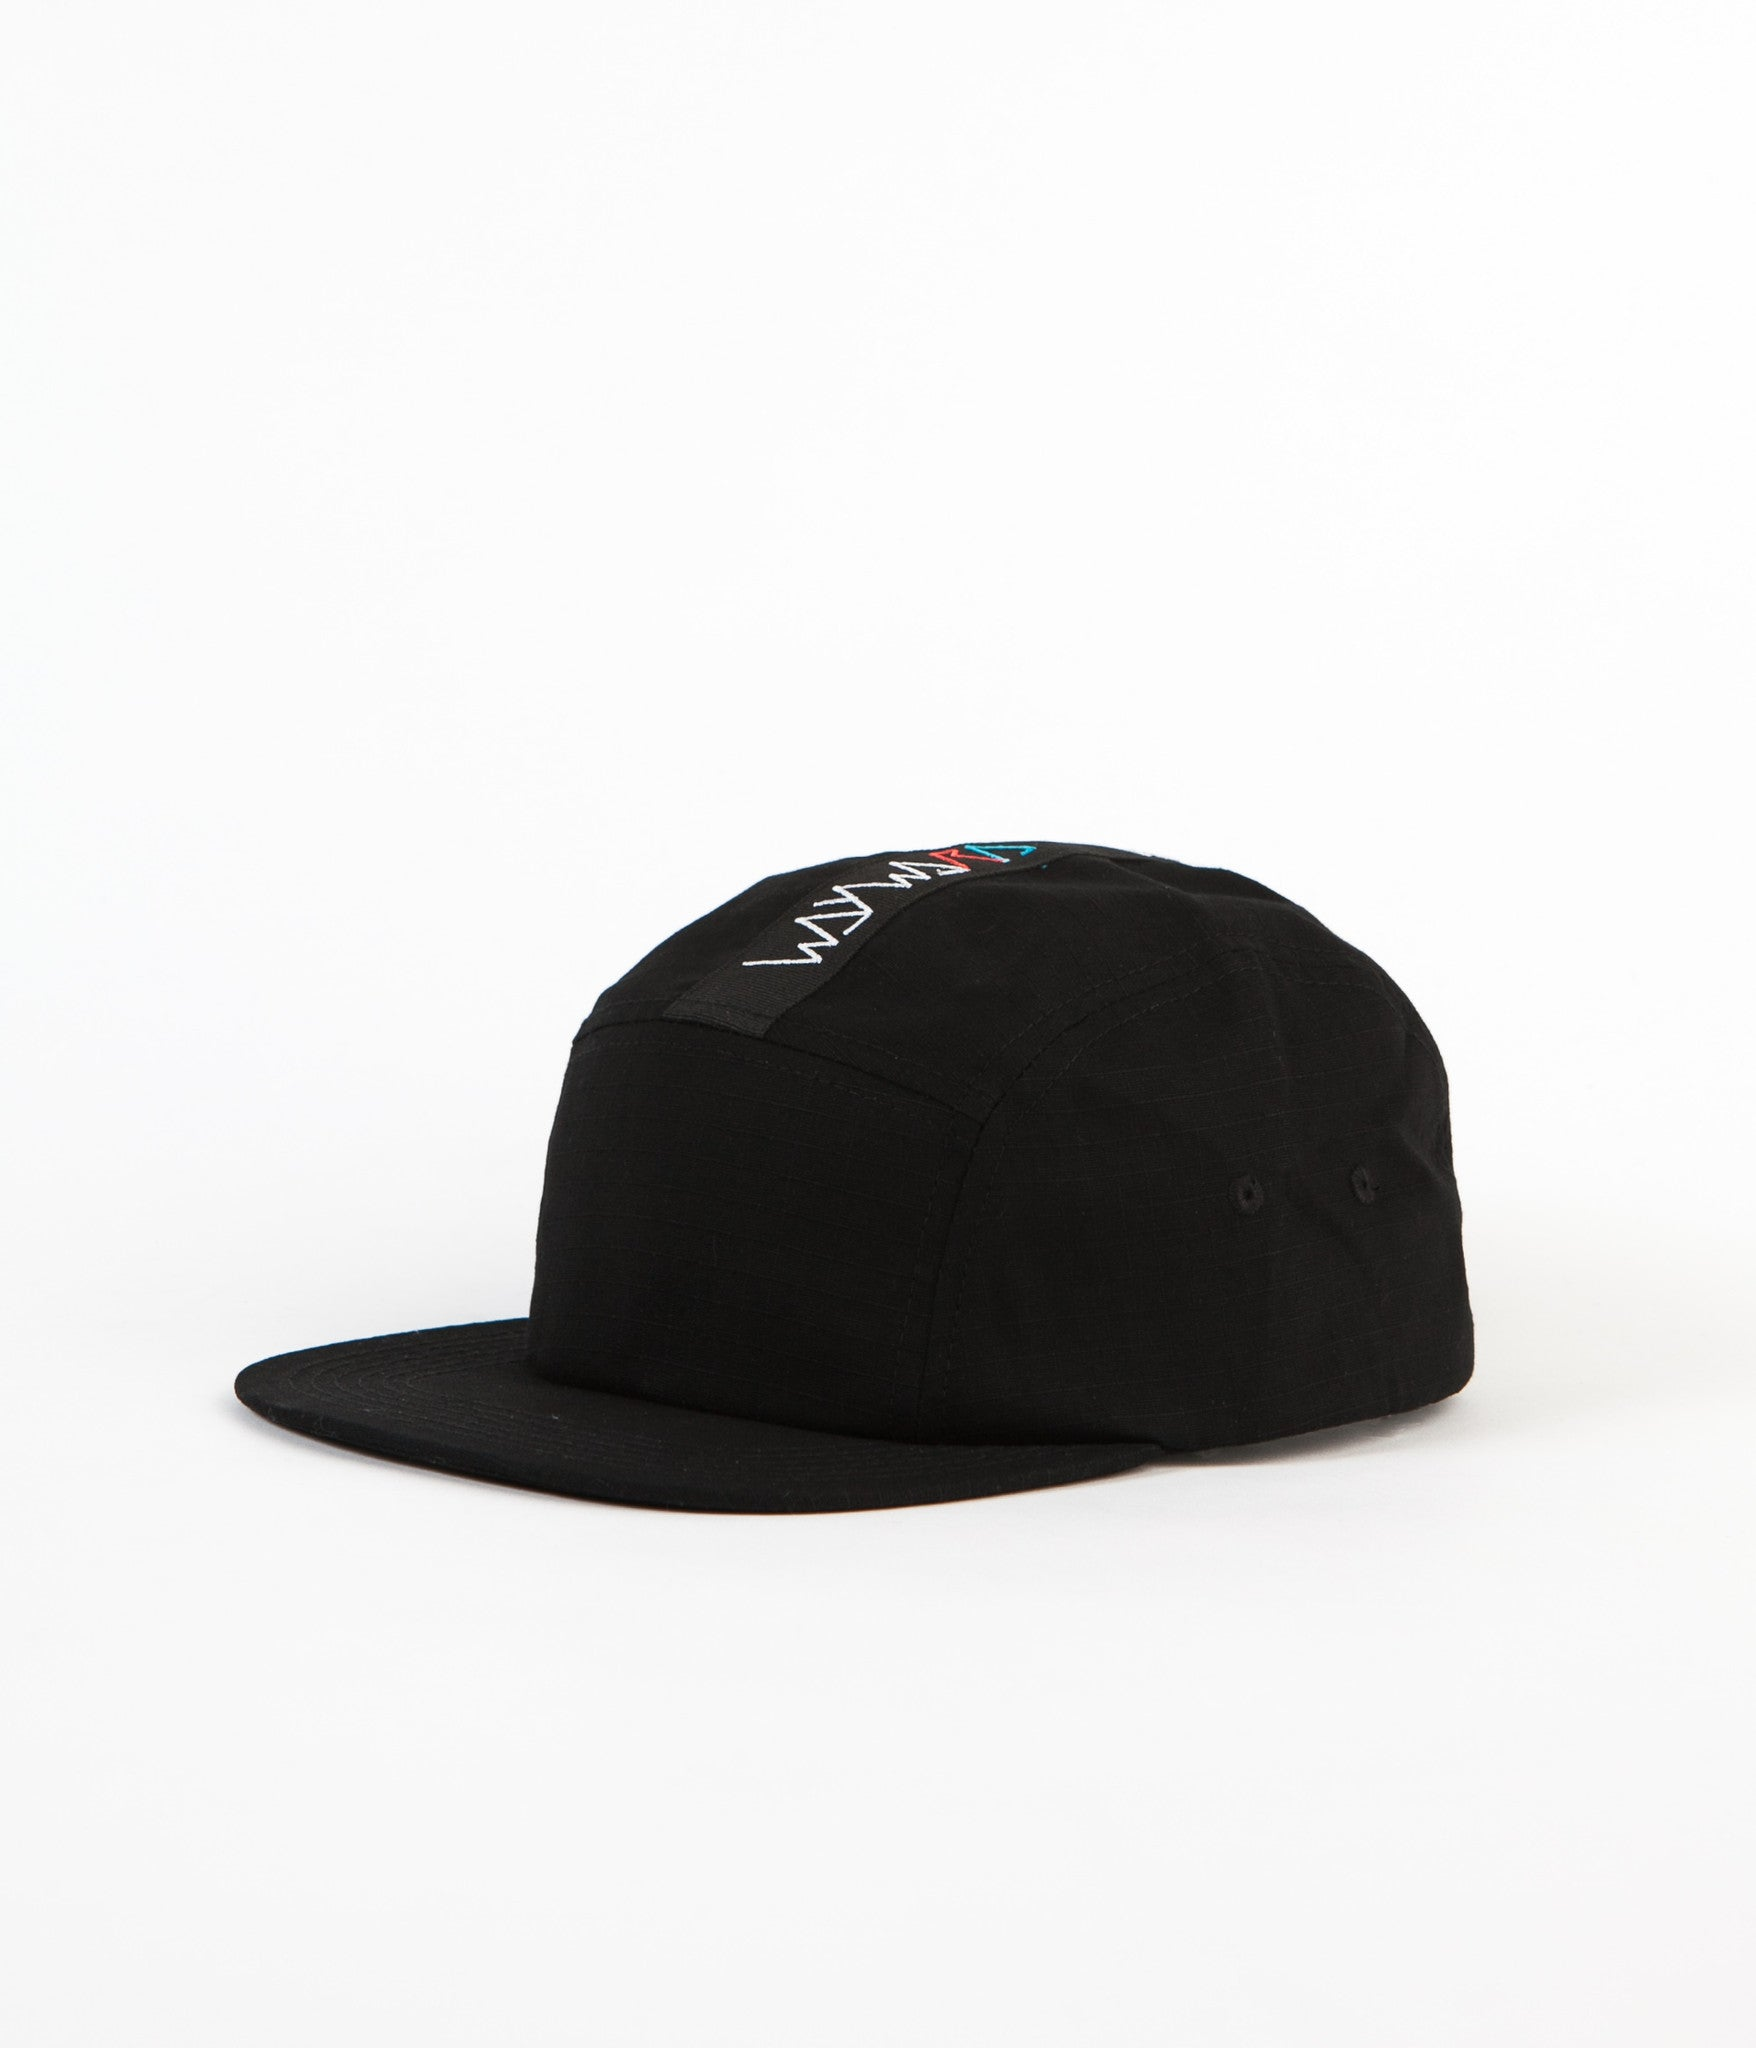 Wayward The Plug Tech Cap - Black